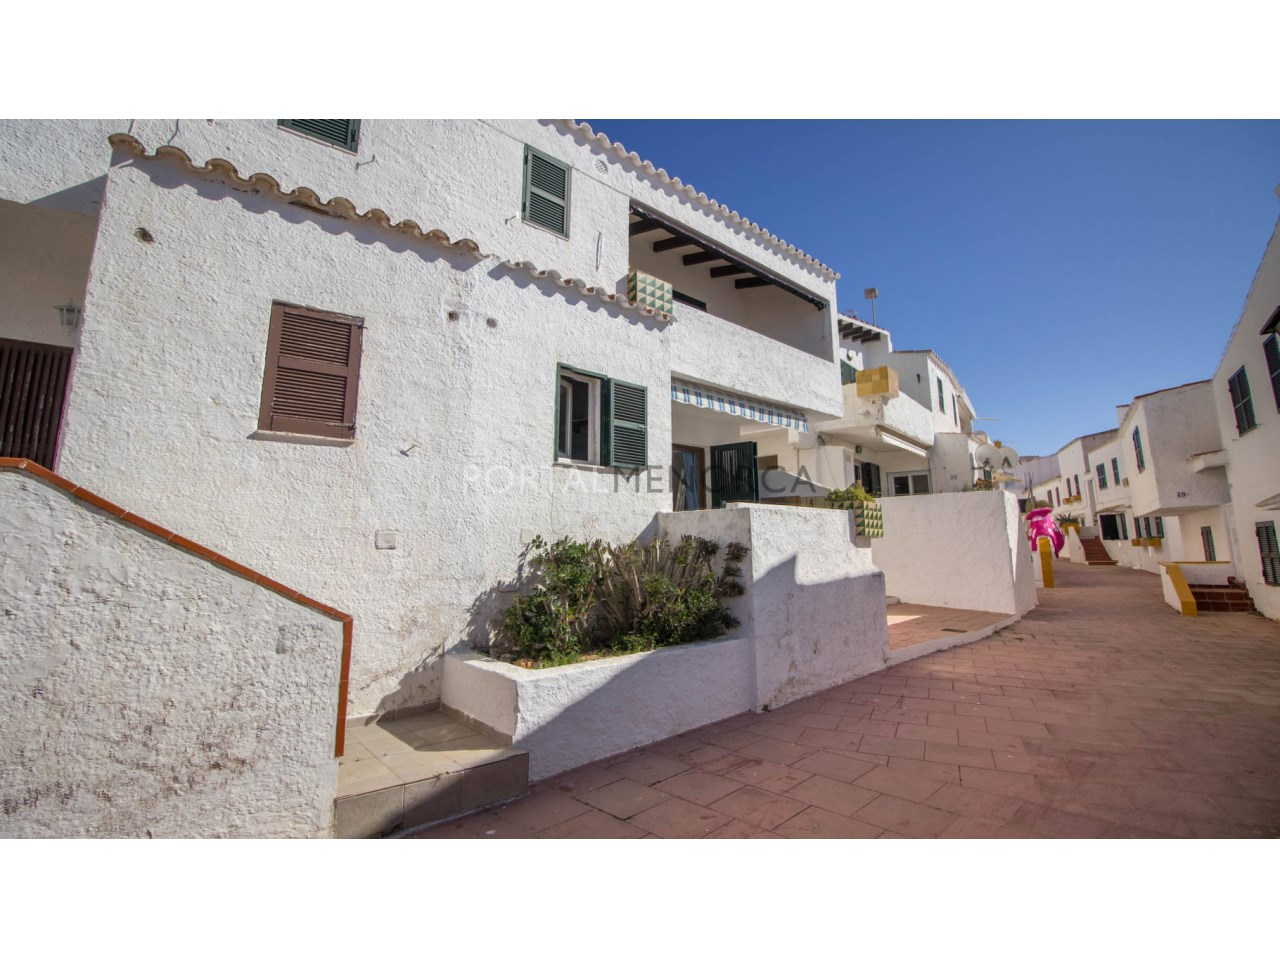 Apartment for sale in Cala Torret